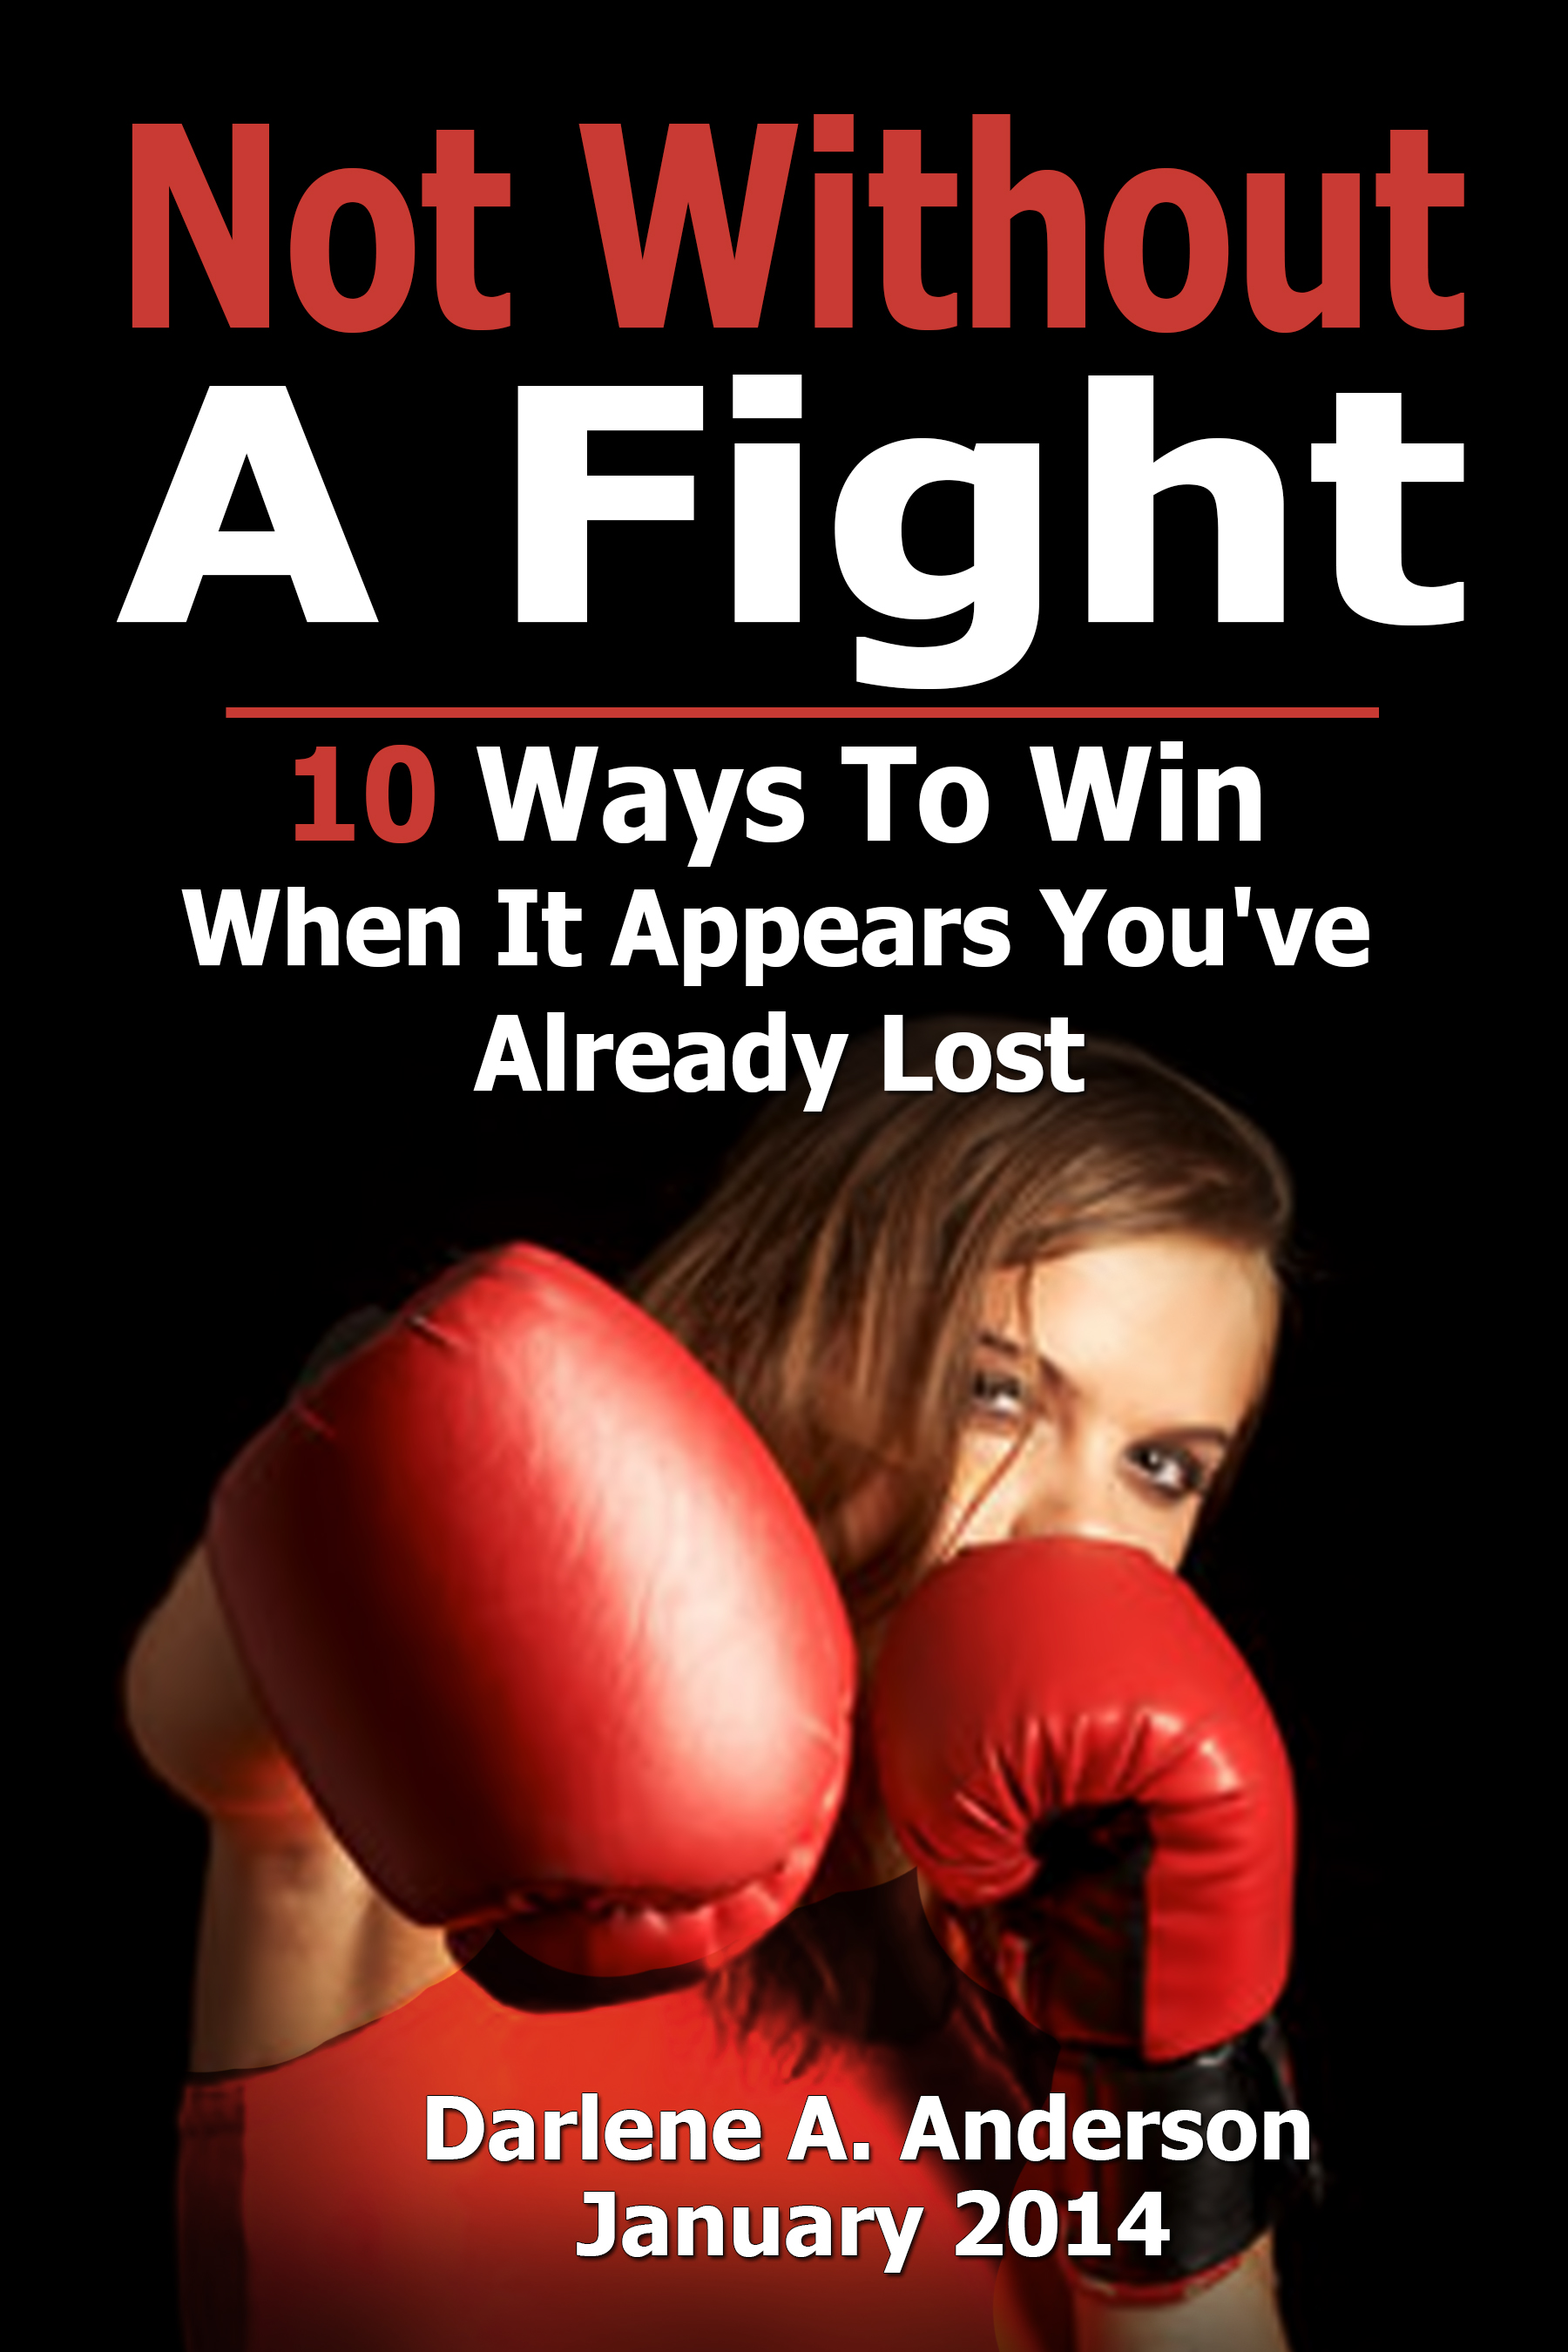 ot Without A Fight….10 Ways To Win When It Appears You've Already Lost, Darlene A. Anderson